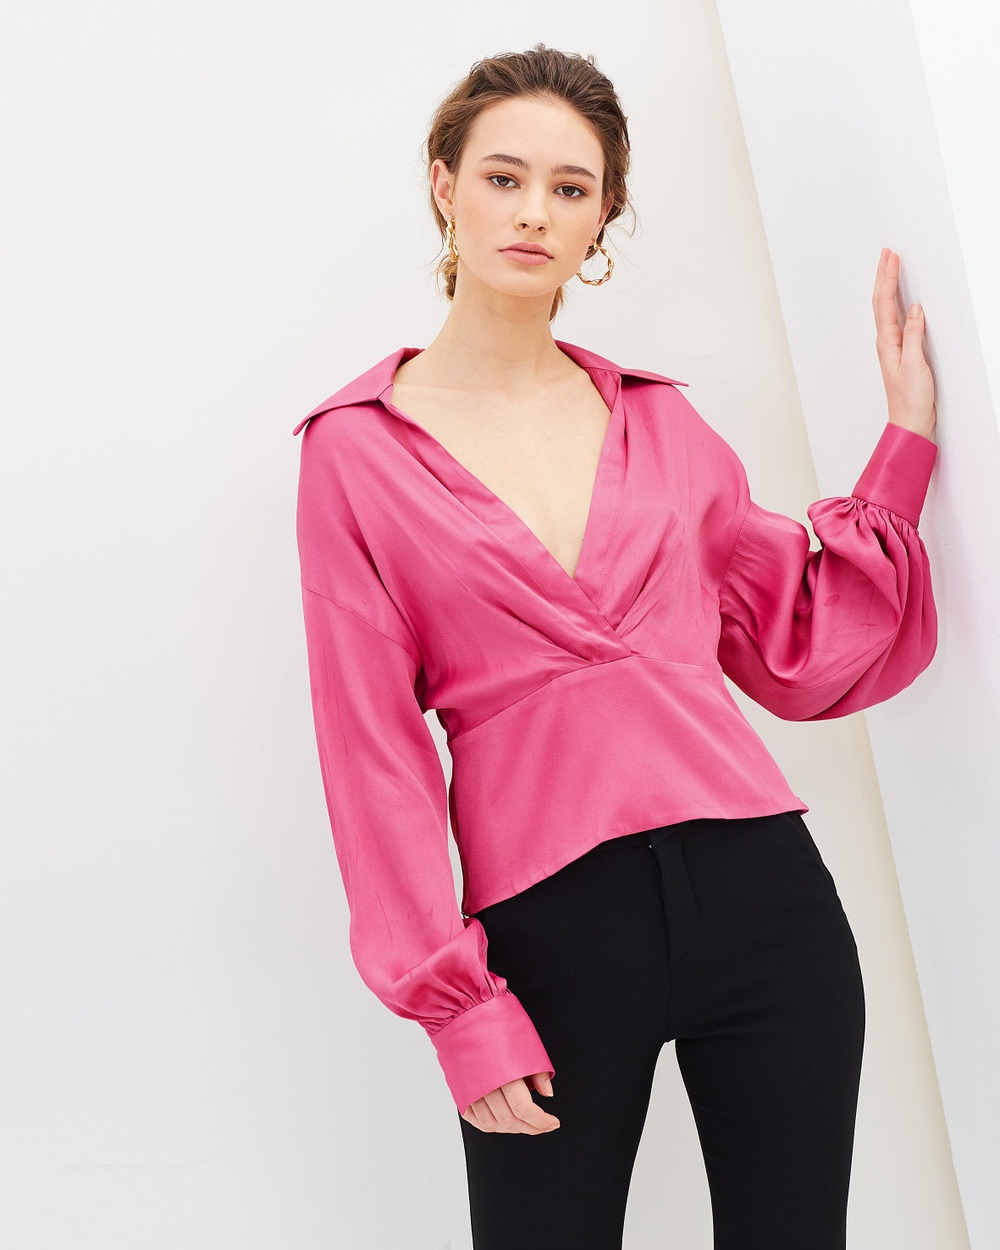 Manning Cartell Status Update Blouse Tops Hot Pink Status Update Blouse